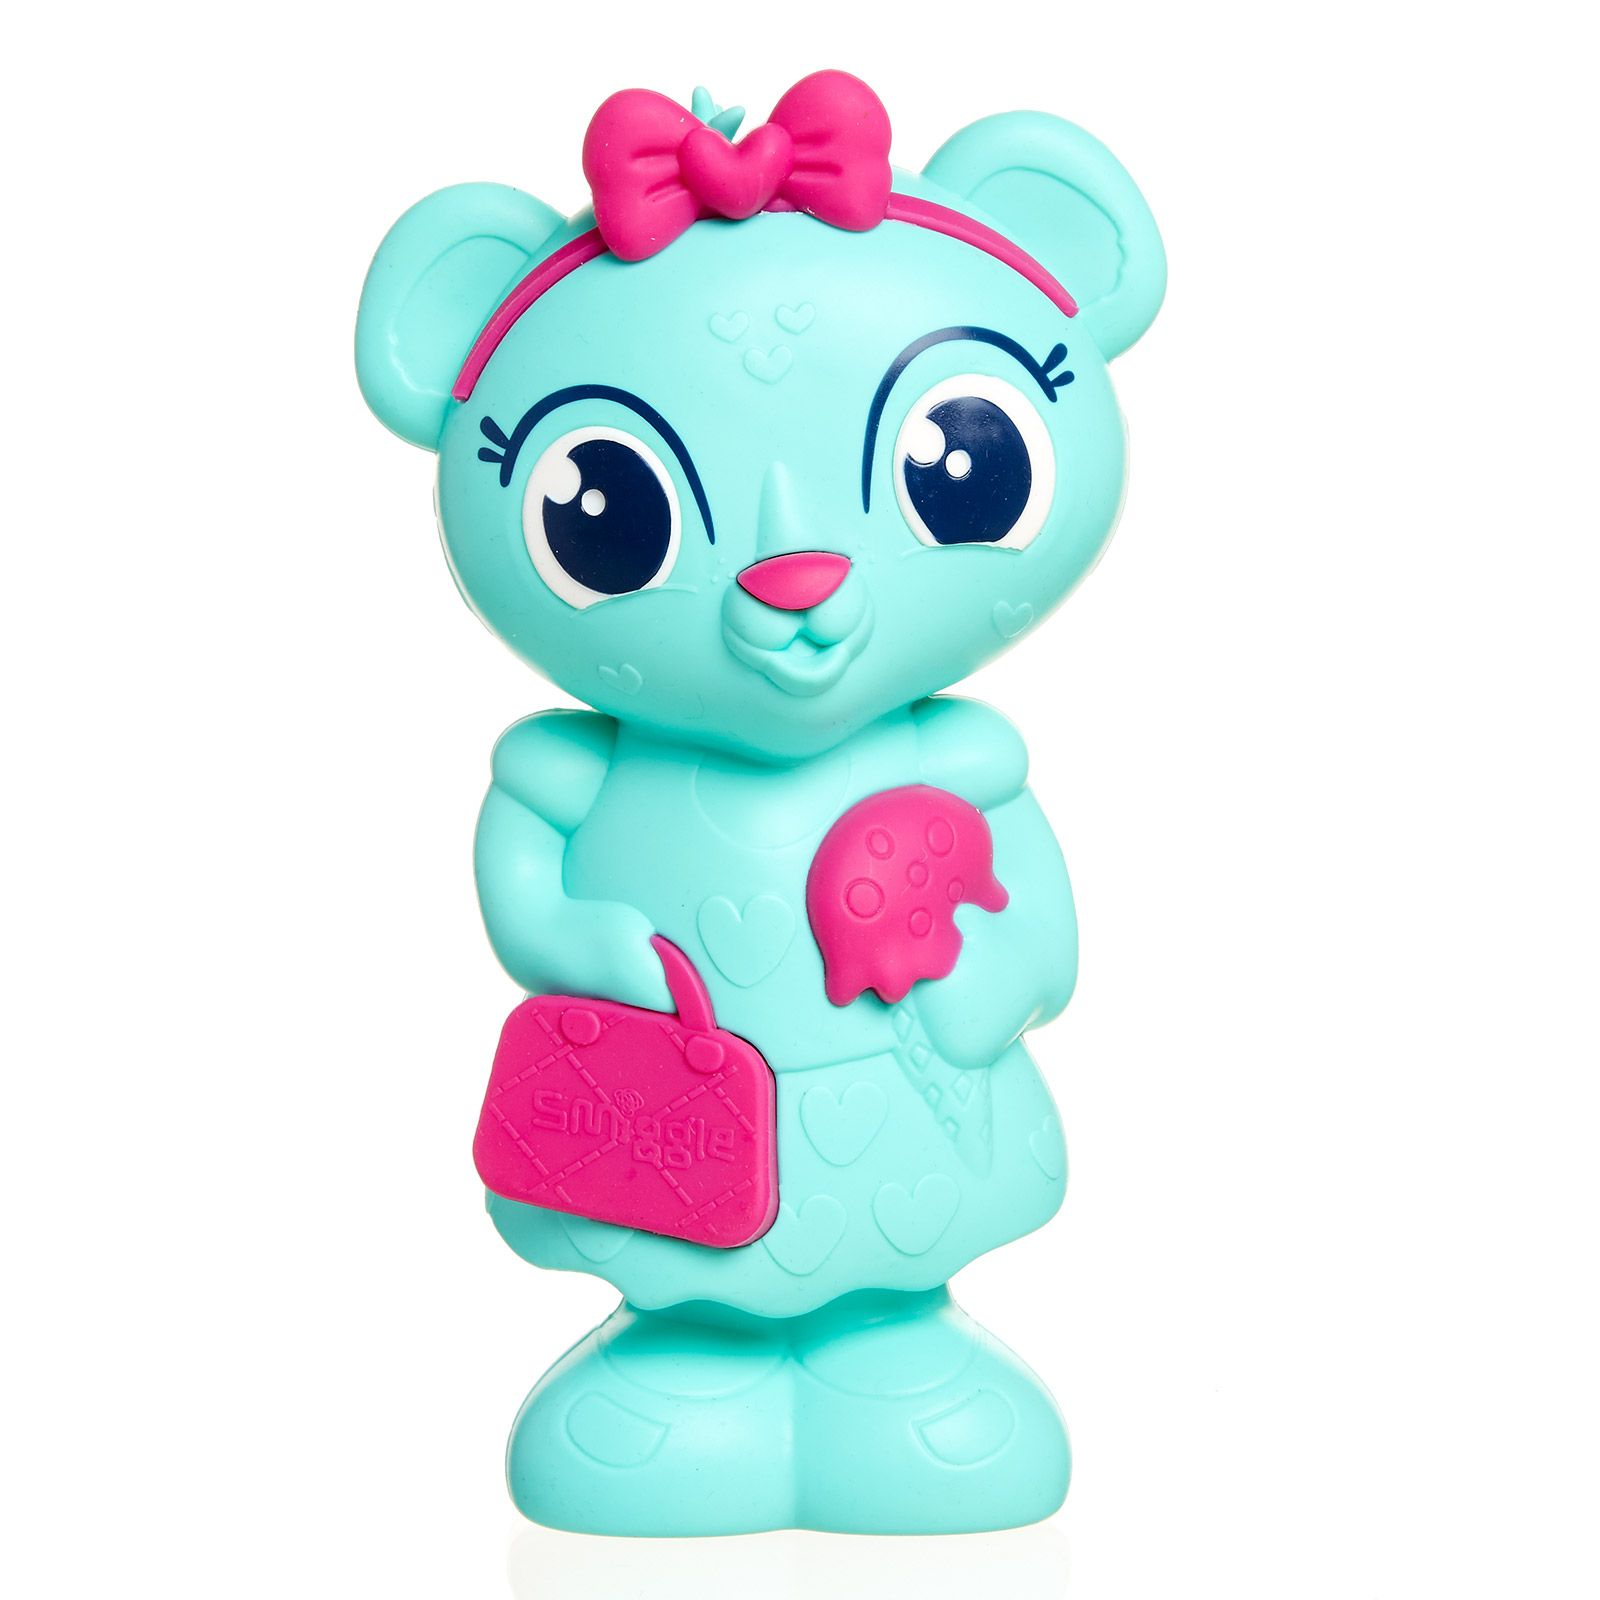 Image for Yay Scented Silicone Pencil Case from Smiggle UK